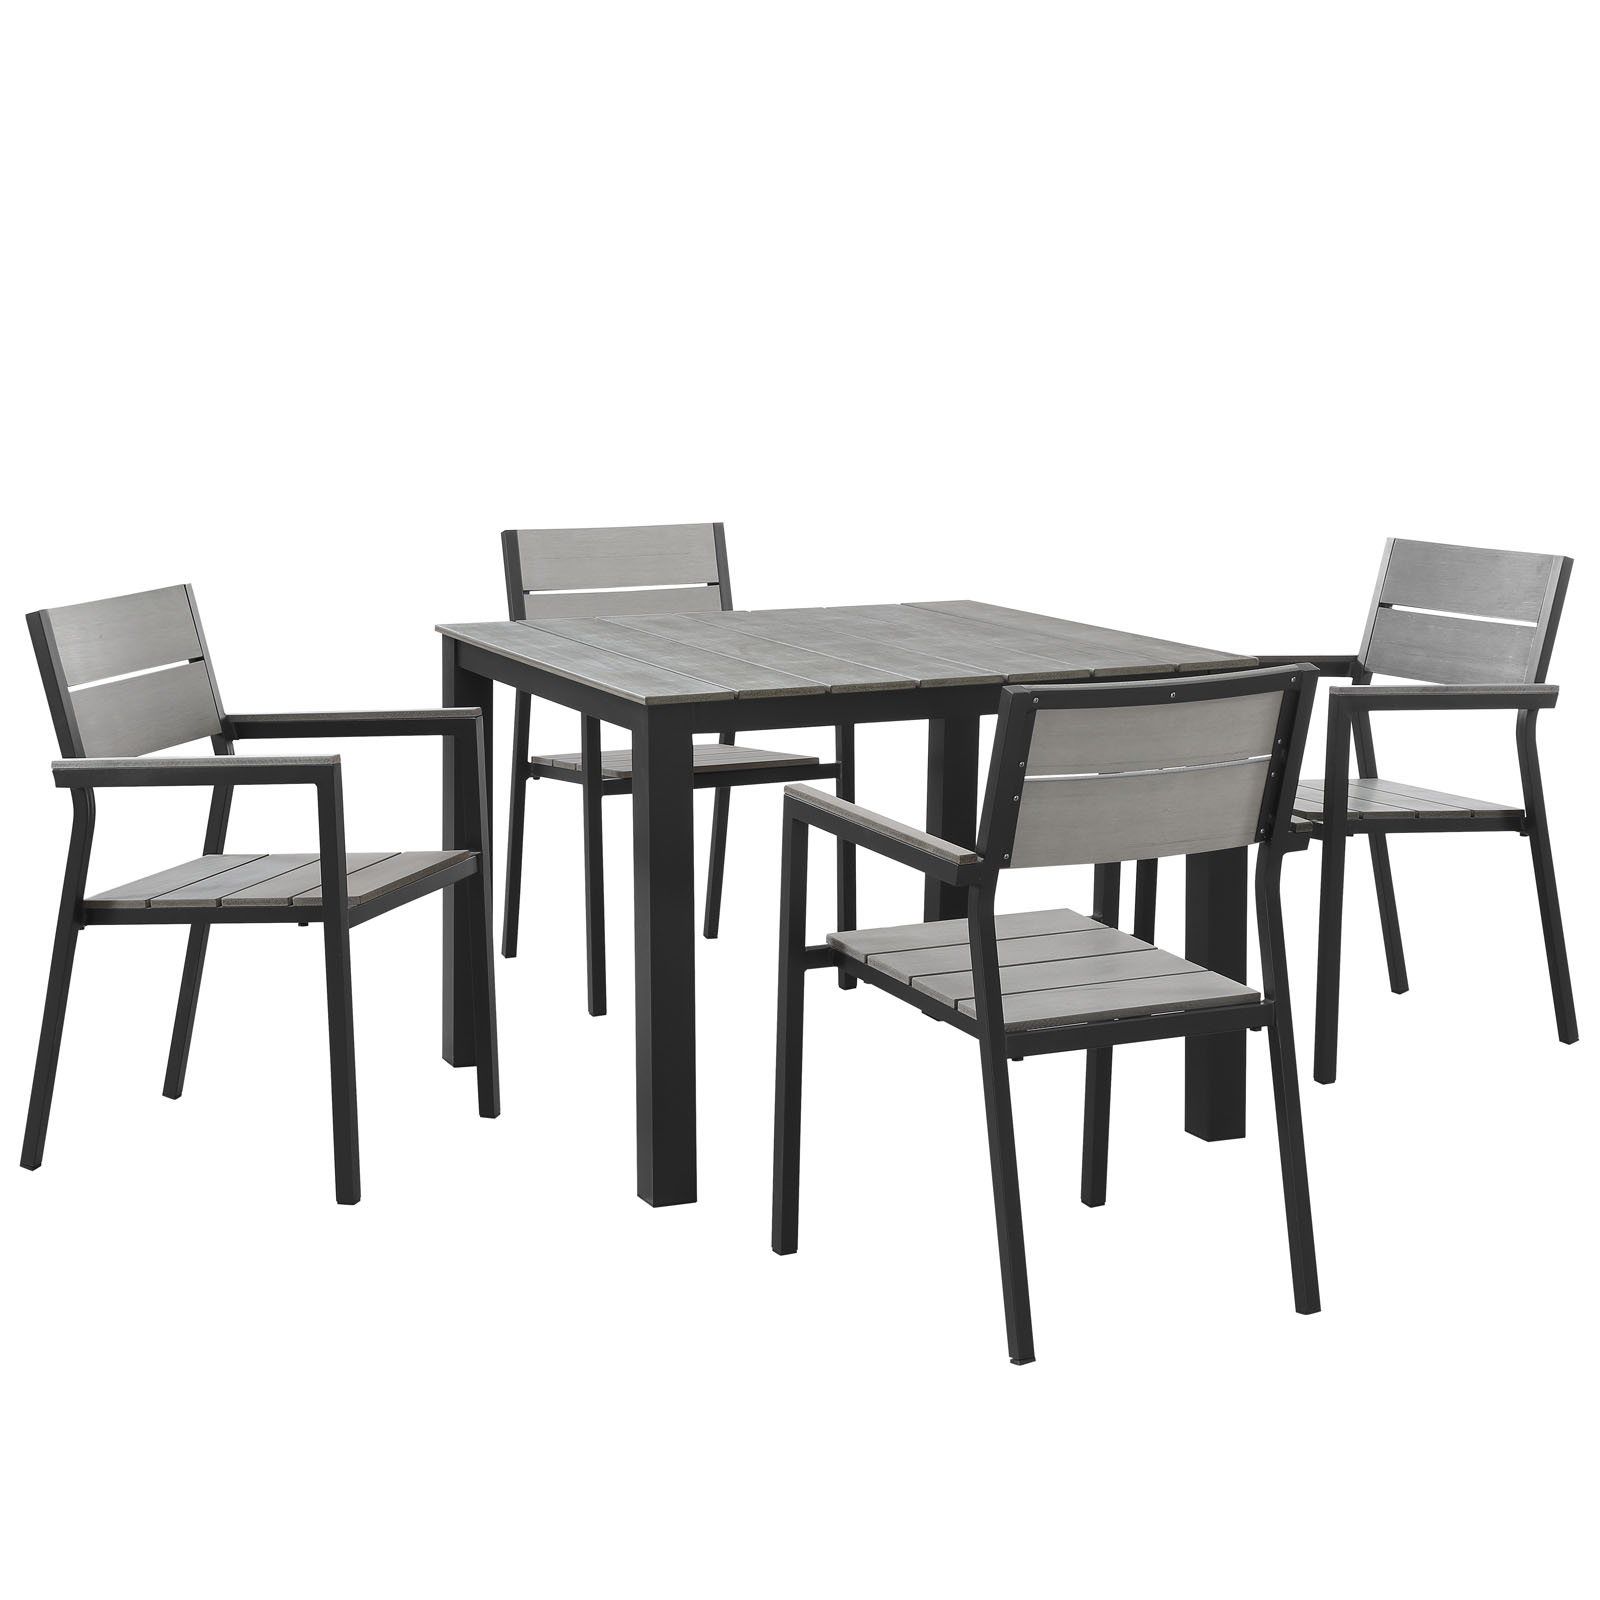 Modern Contemporary Five PCS Outdoor Patio Dining Room Set, Grey, Polywood, Aluminum by